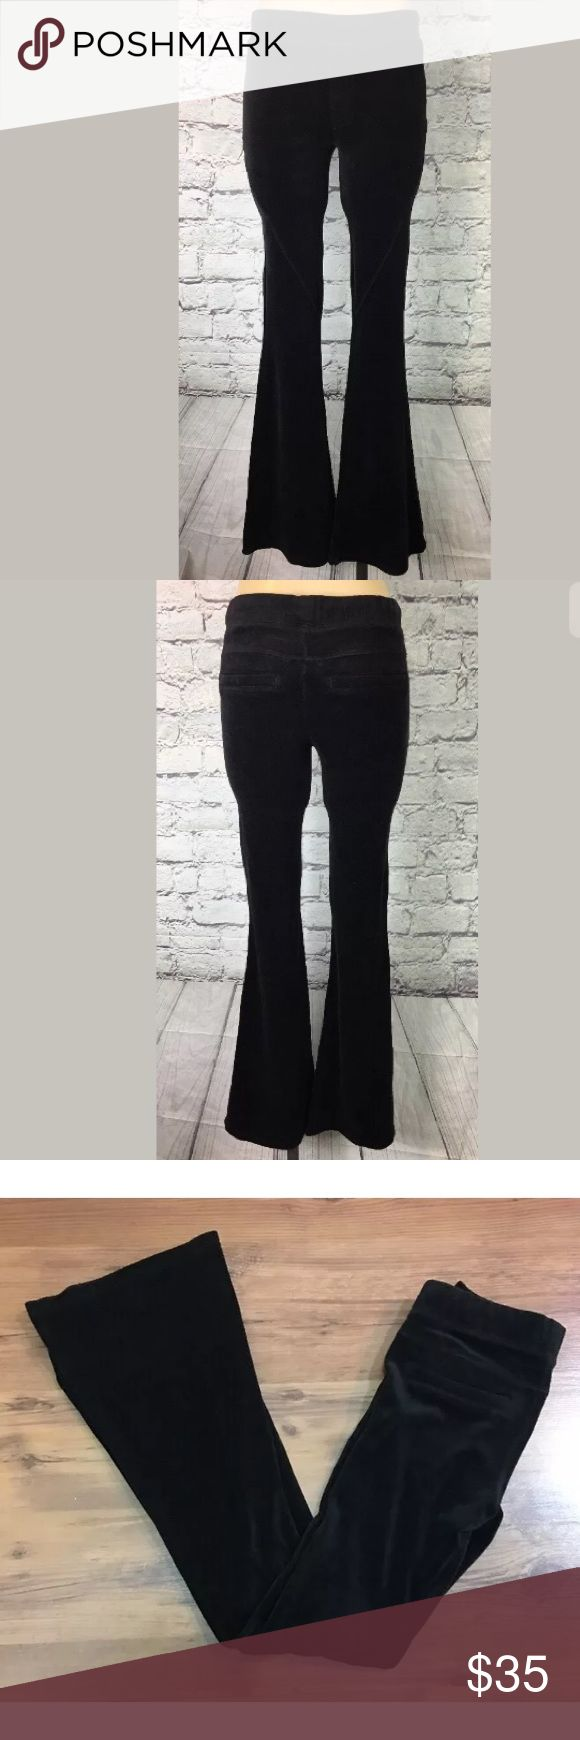 NWT Pam & Gela skinny velvet flare pants boho NWT Pam & Gela  Black Skinny Flare Crushed Velvet Pants  Sz Petite  Clean ready to ship  Measurements in photos  If you have any questions please ask pam & gela Pants Skinny